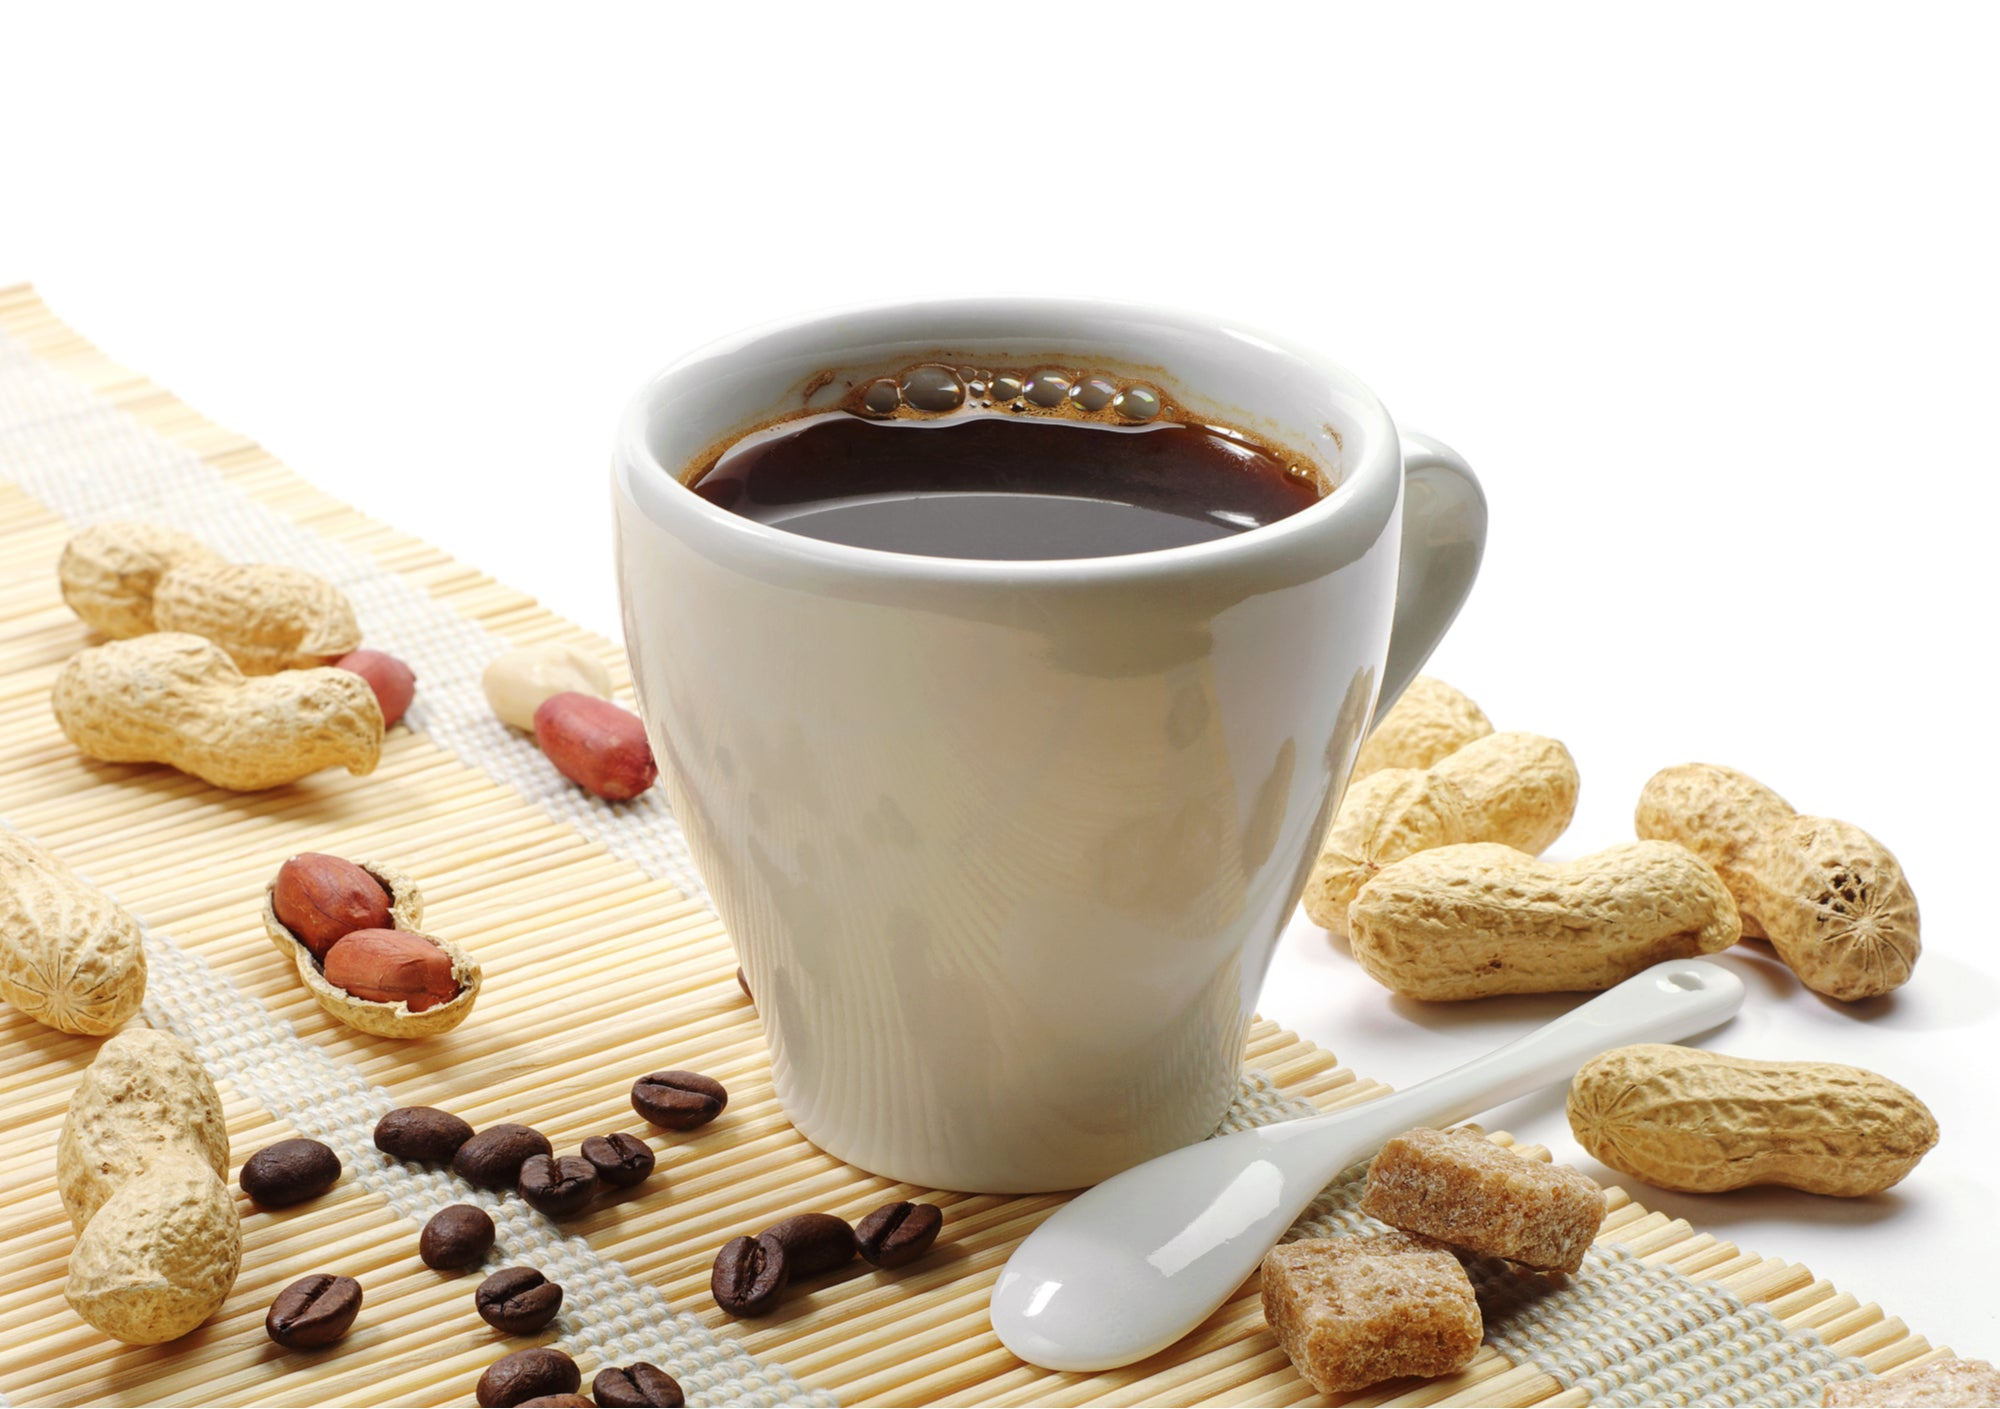 national peanut month - peanuts and coffee